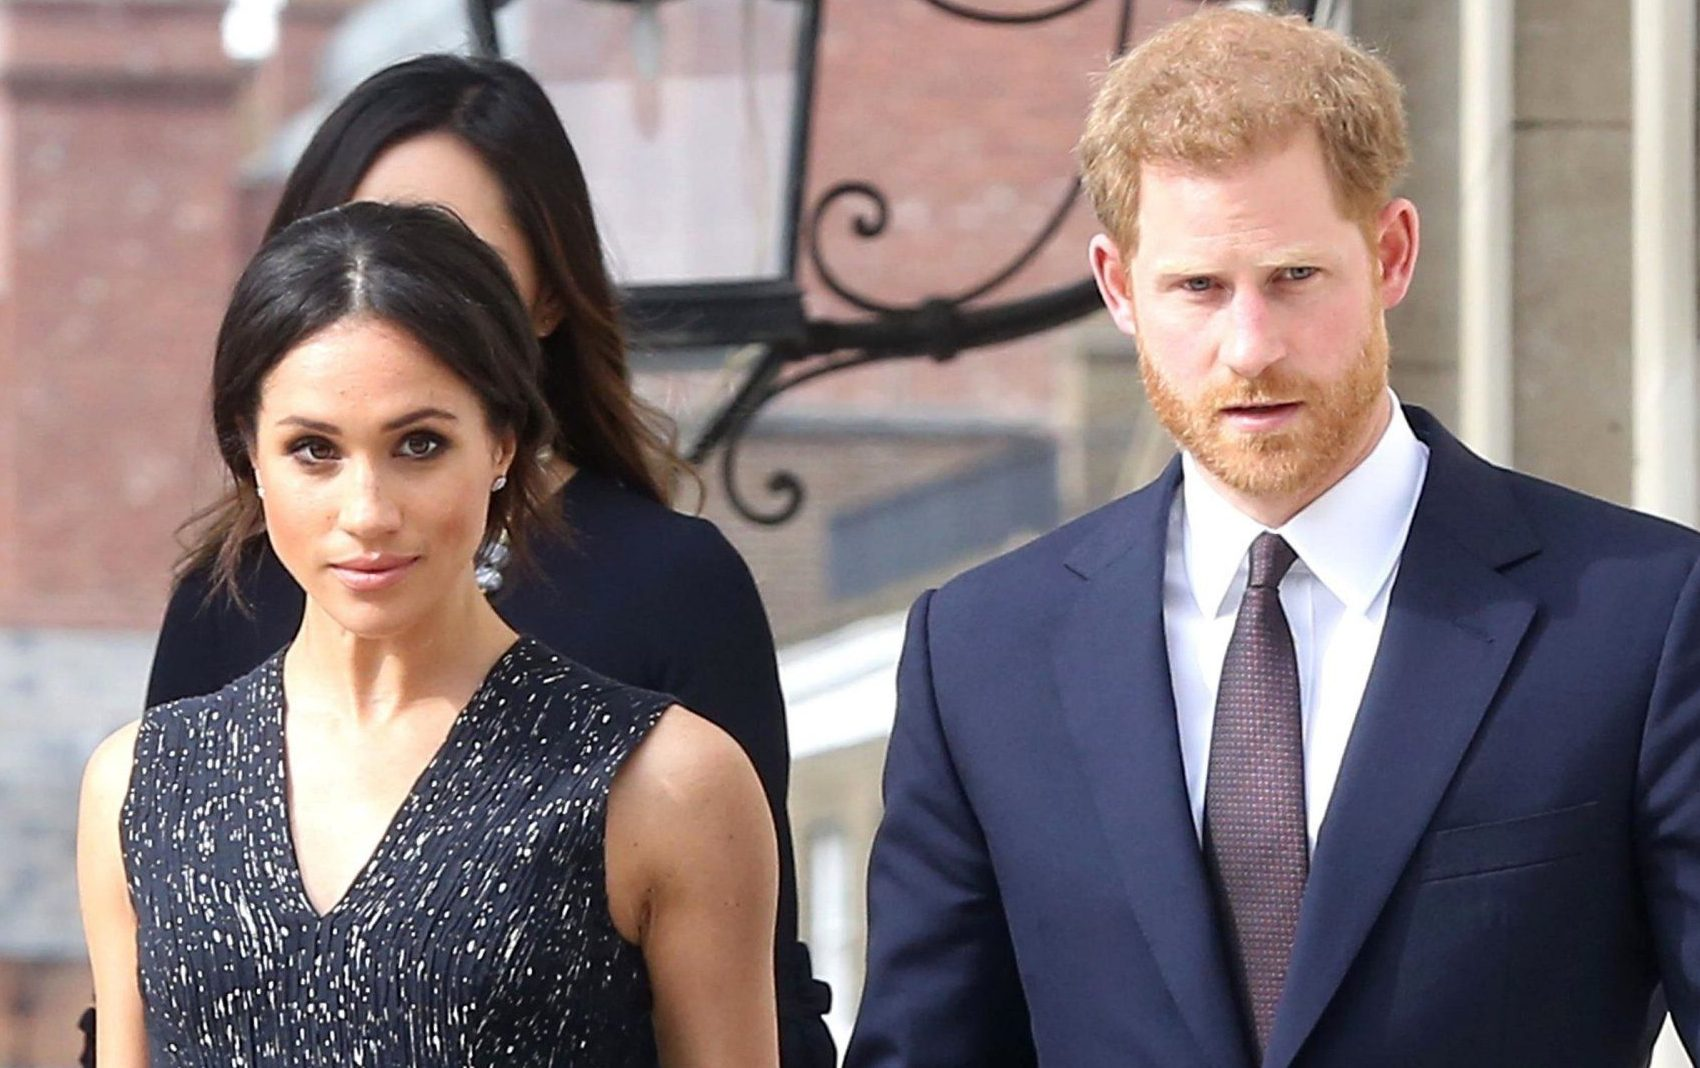 BGUK_1213576 - London, UNITED KINGDOM - VIP guests attend a memorial service to commemorate the 25th anniversary of the murder of Stephen Lawrence and to celebrate his life and legacy in London, UK. Pictured: Prince Harry, Meghan Markle BACKGRID UK 23 APRIL 2018 BYLINE MUST READ: A WEIR / BACKGRID UK: +44 208 344 2007 / uksales@backgrid.com USA: +1 310 798 9111 / usasales@backgrid.com *UK Clients - Pictures Containing Children Please Pixelate Face Prior To Publication*